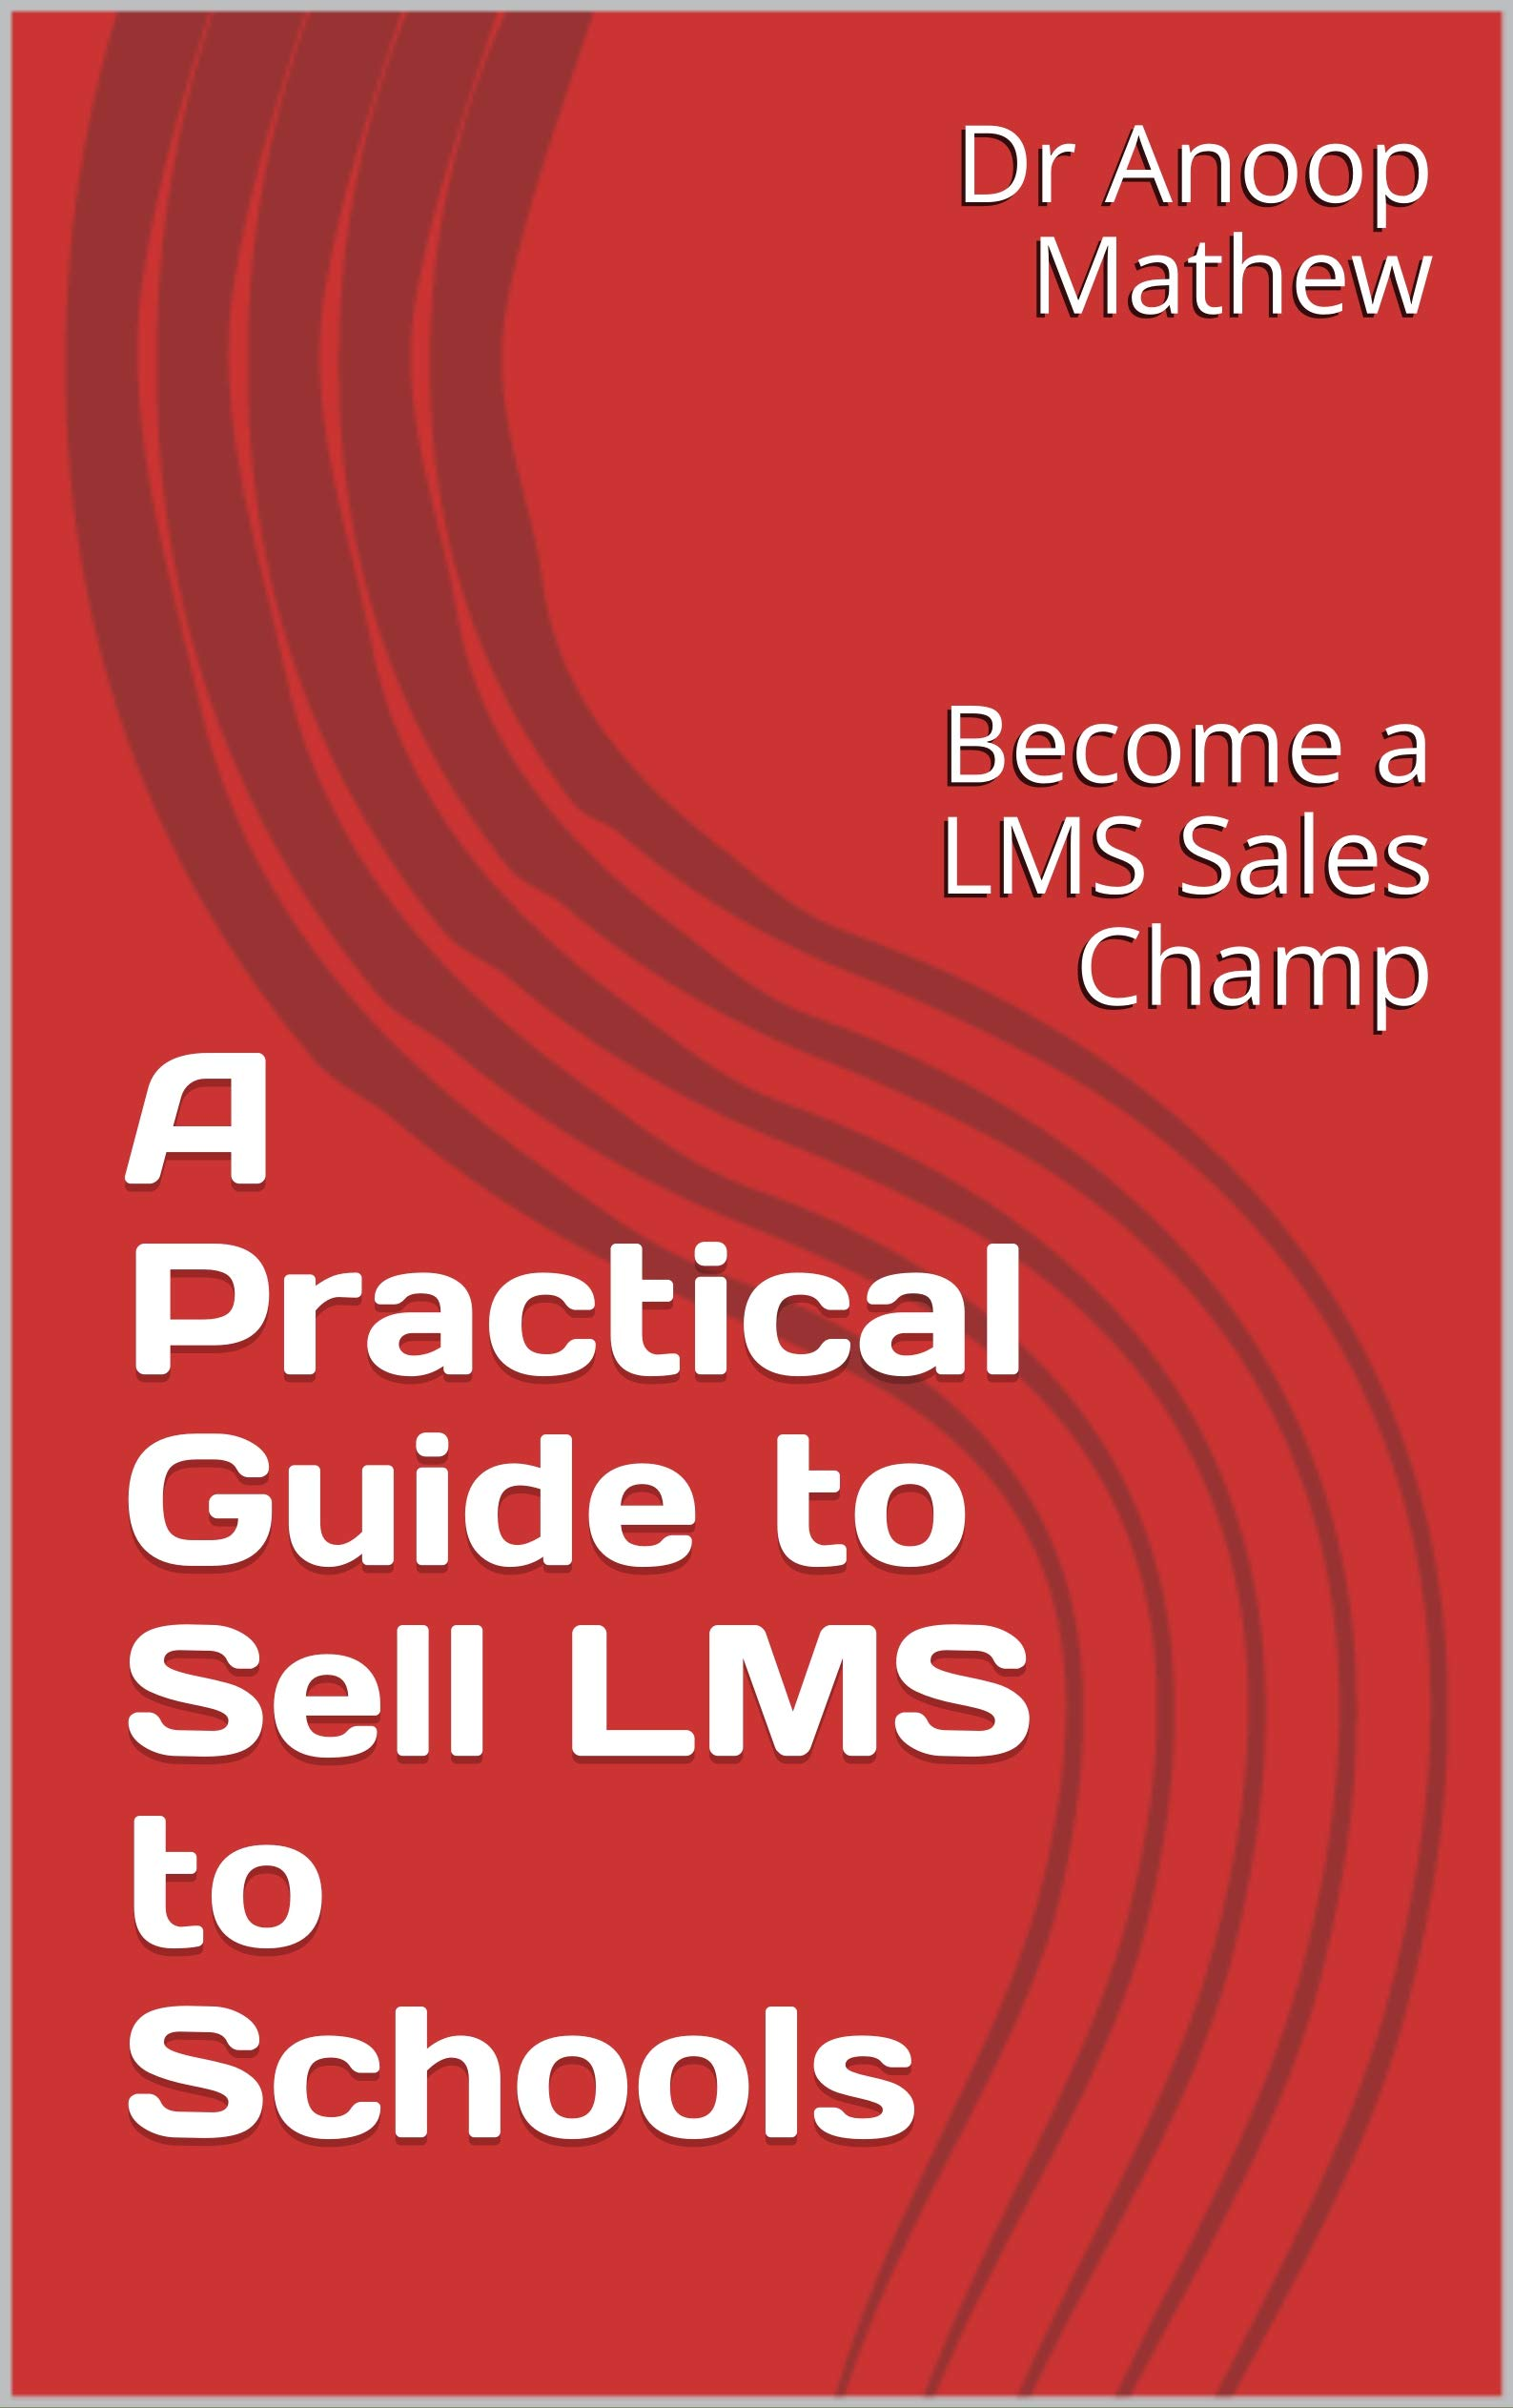 A Practical Guide to Sell LMS to Schools: Become a LMS Sales Champ